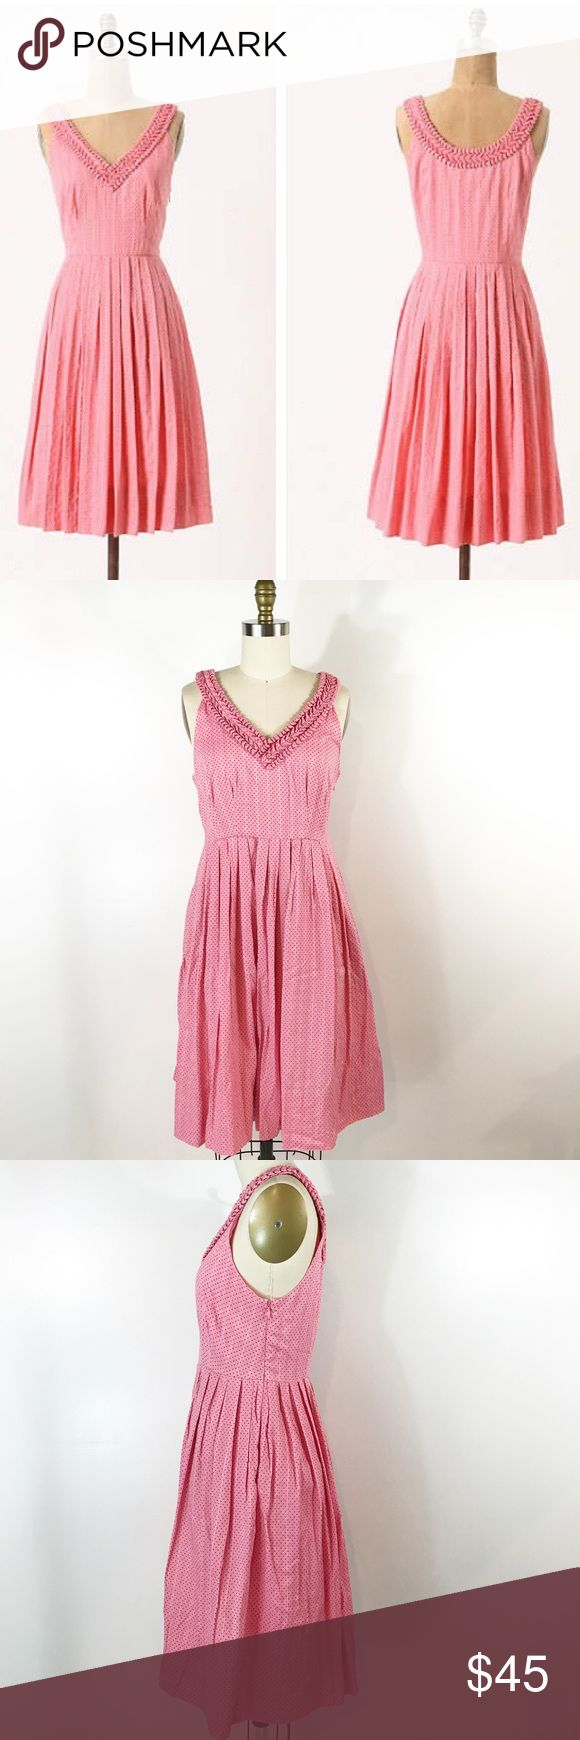 """⭐️ NEW ARRIVAL Anthropologie Melon Ball Dress Pink I adore this vintage style pink polka dot dress! V neck with gathered detail, pleats at the skirt and invisible side zipper. This dress has pockets! Fits a little large, closer to a 4. Bust measures 35"""" and waist measures 28"""". Length 38"""". Very good condition with no issues. Anthropologie Dresses"""